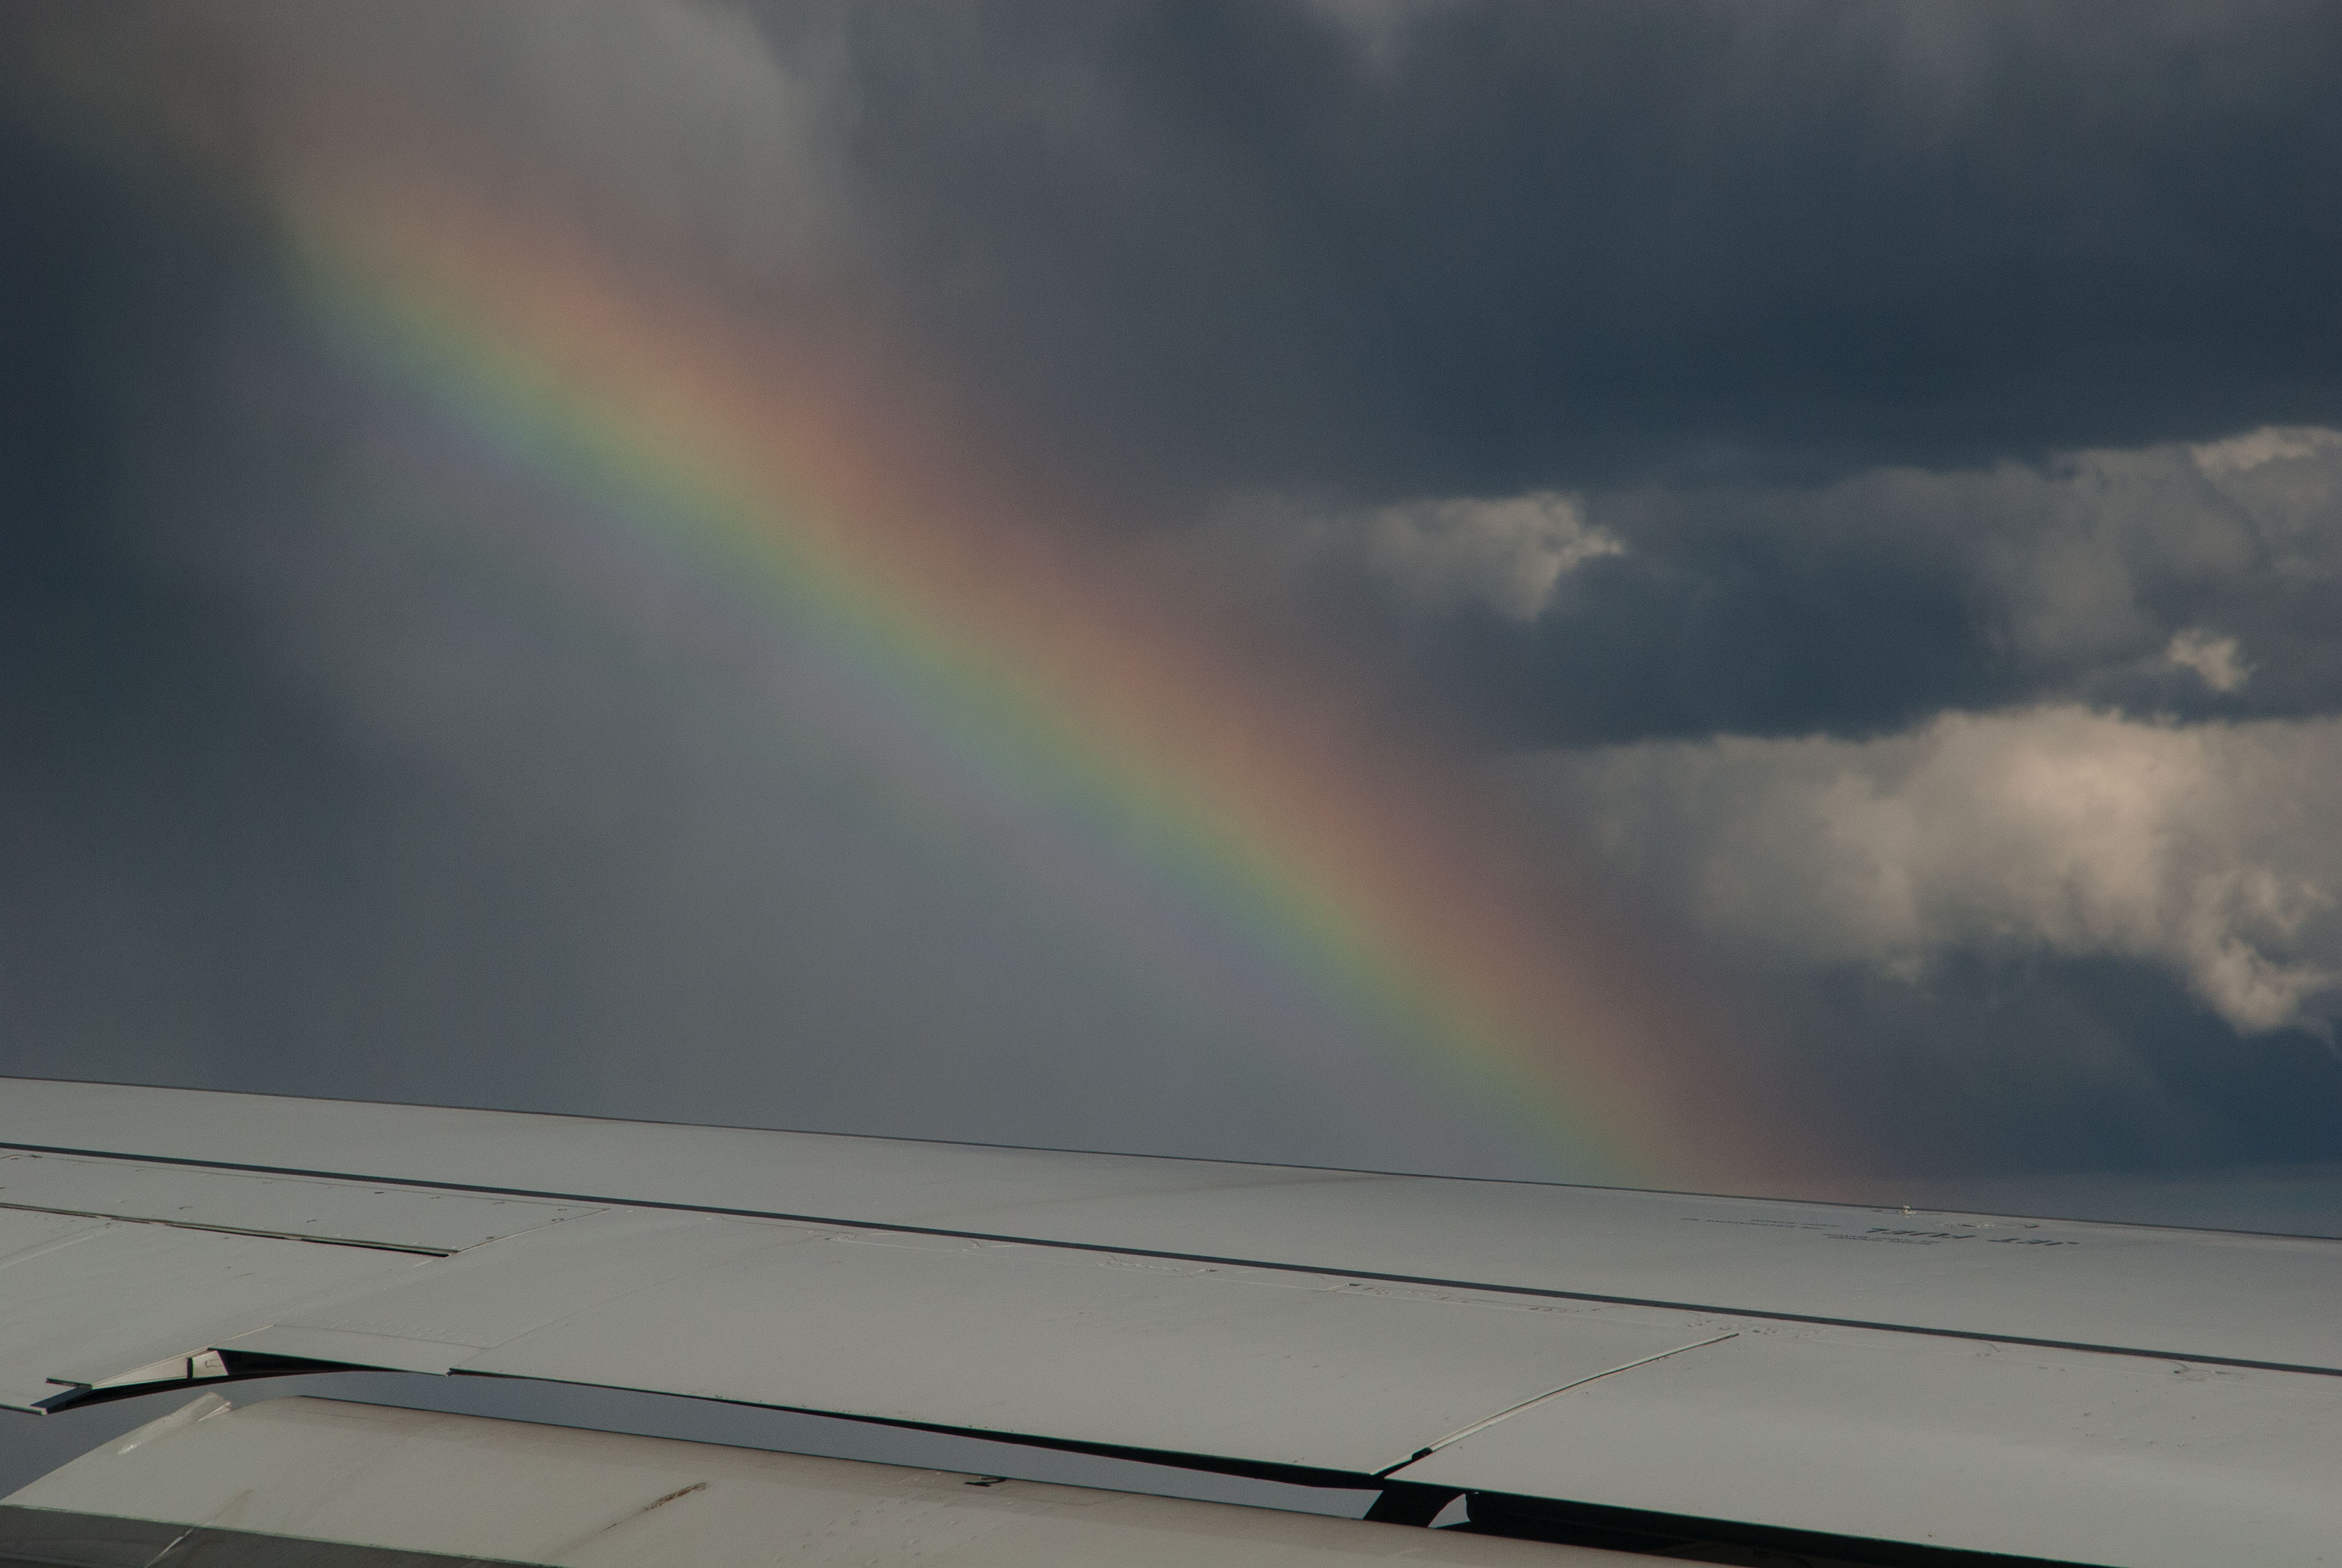 Airplane in clouds with rainbow